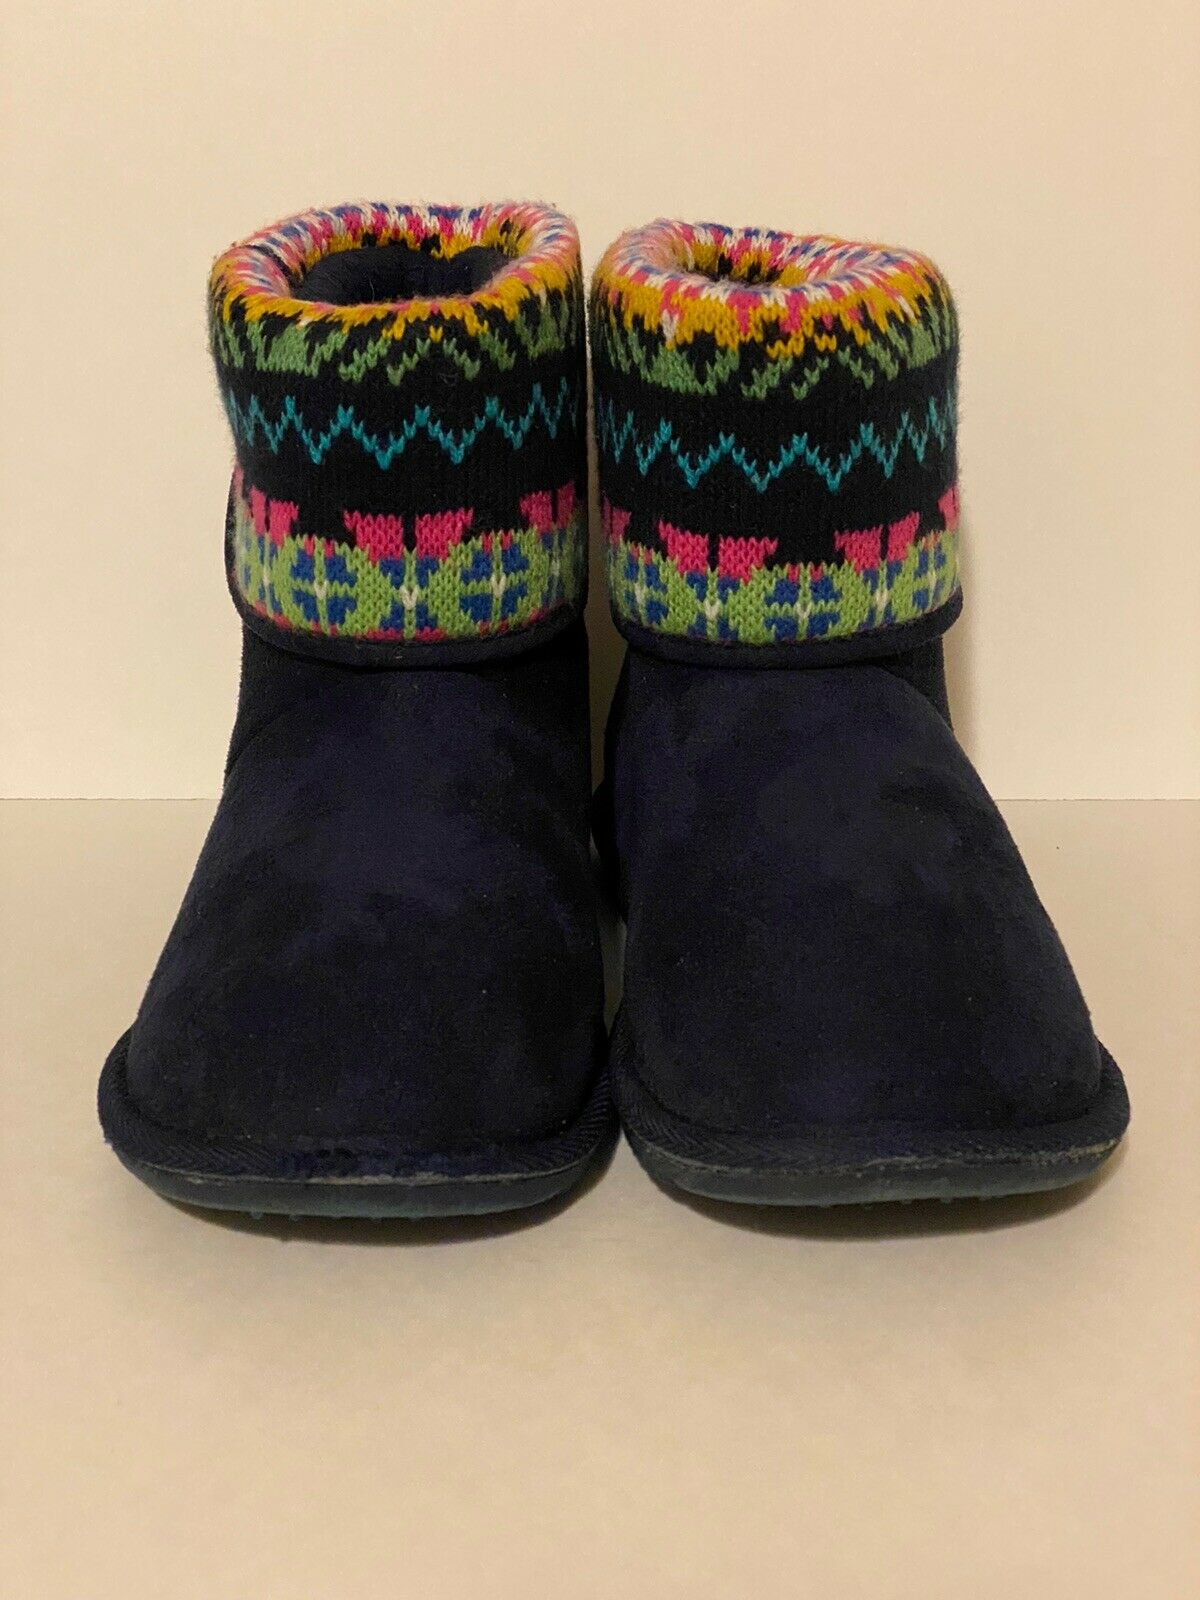 American Rag Bunny bleu marine Temps froid Bottes Taille 9